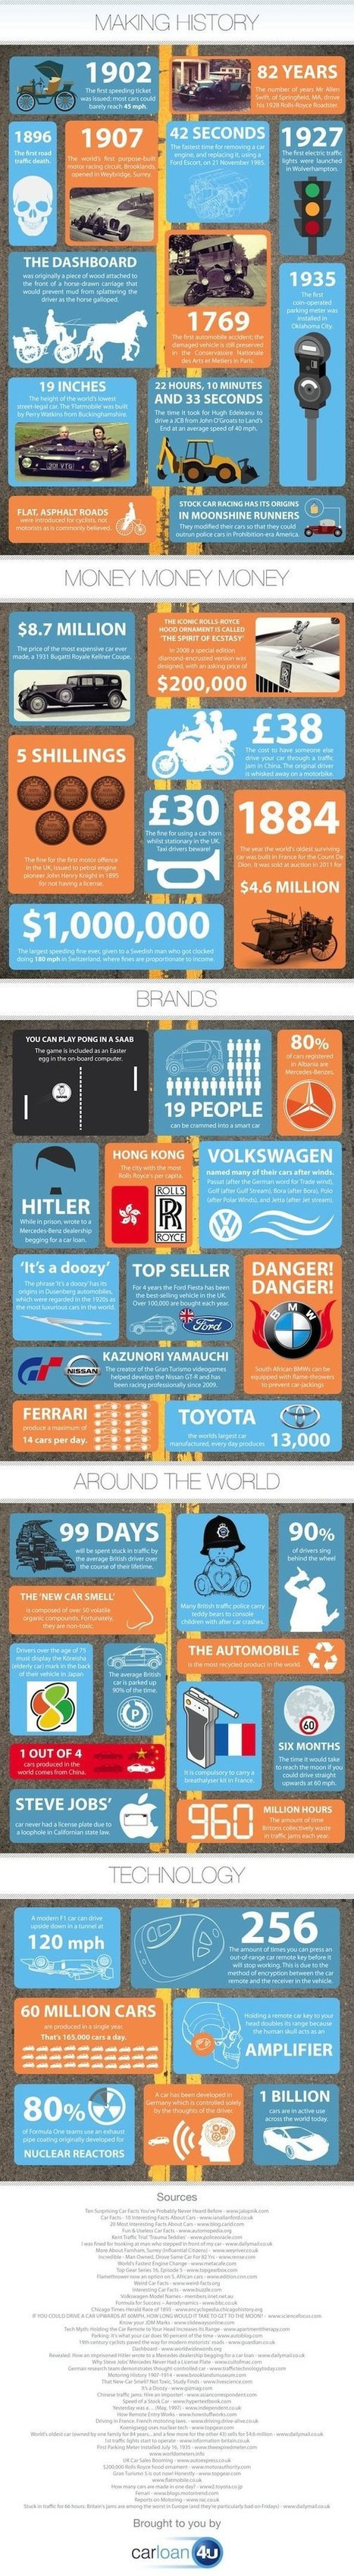 50 quirky car facts that will blow your mind [infographic] | Automotive | Scoop.it